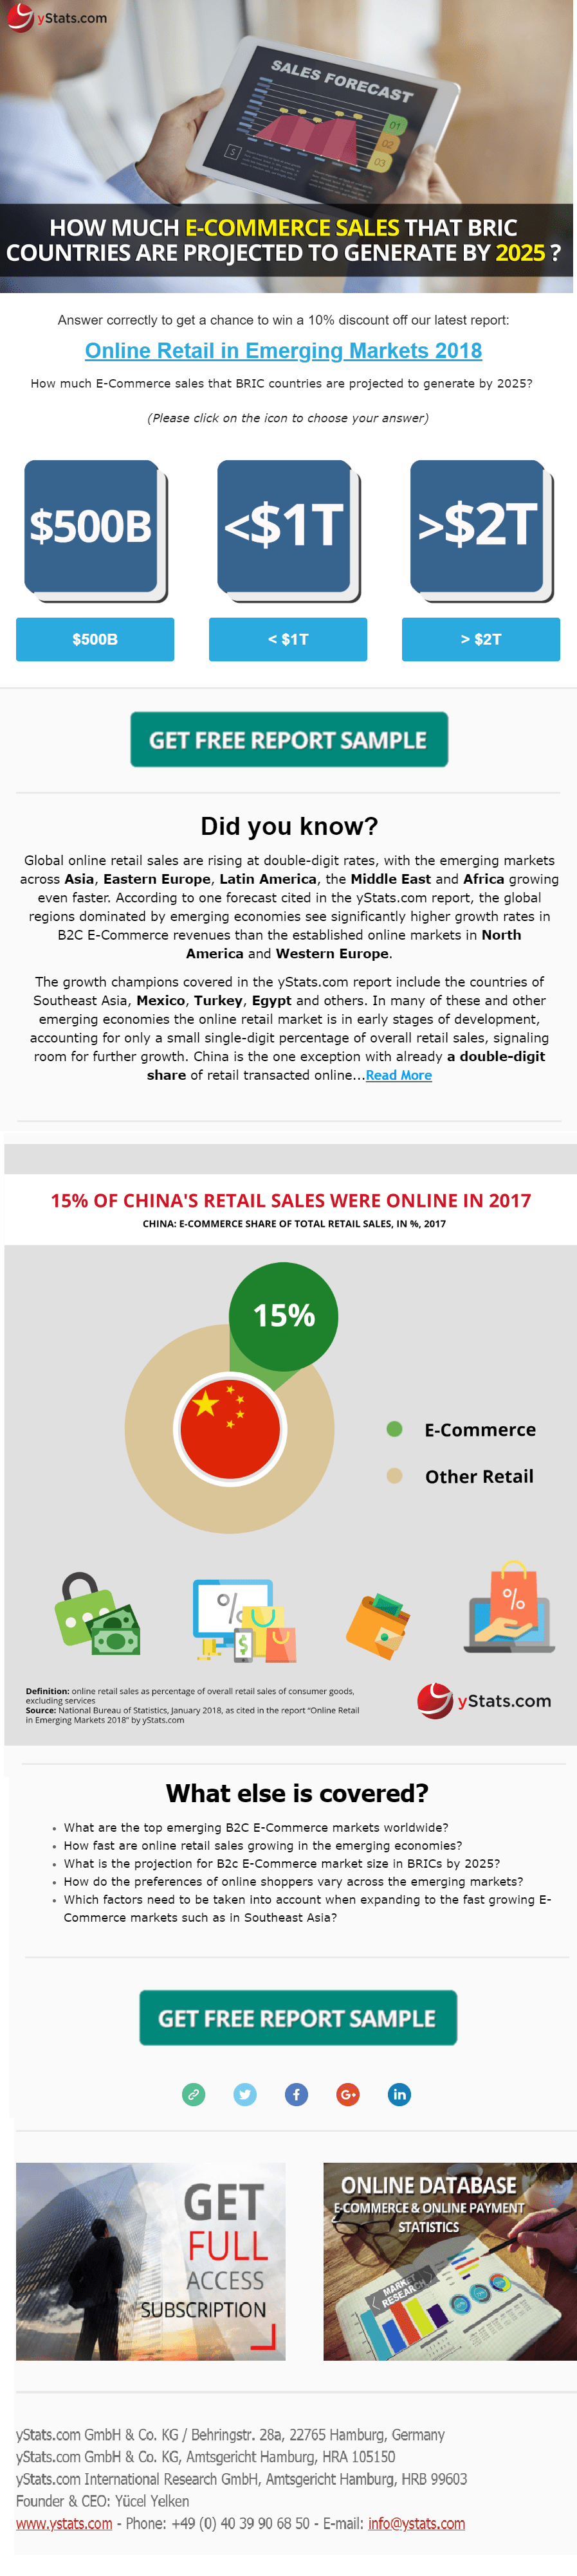 Online retail emerging markets 2018